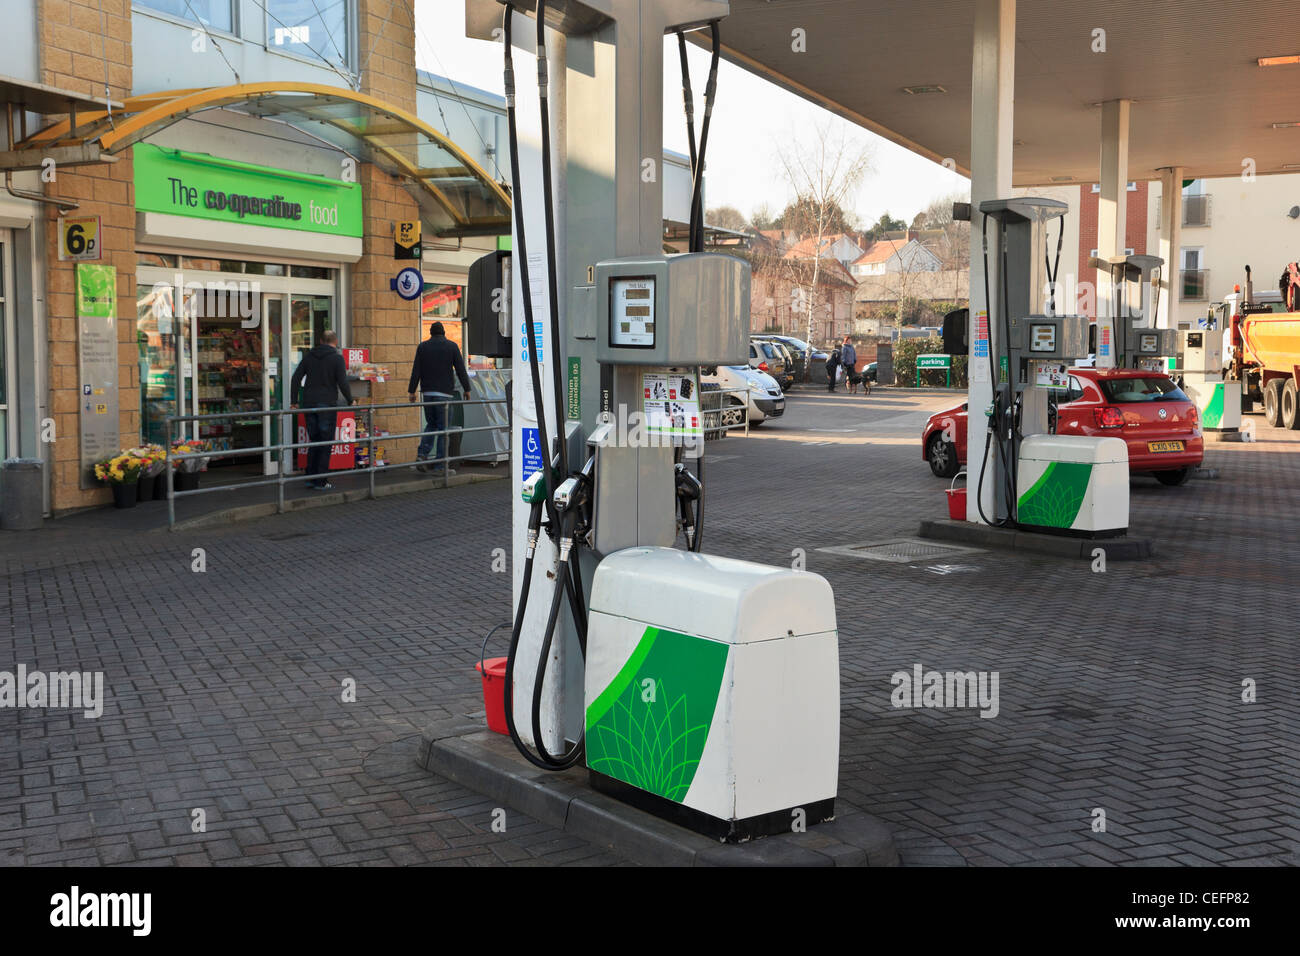 Fuel pumps on a BP filling station forecourt with Co-operative shop convenience store. UK Britain - Stock Image